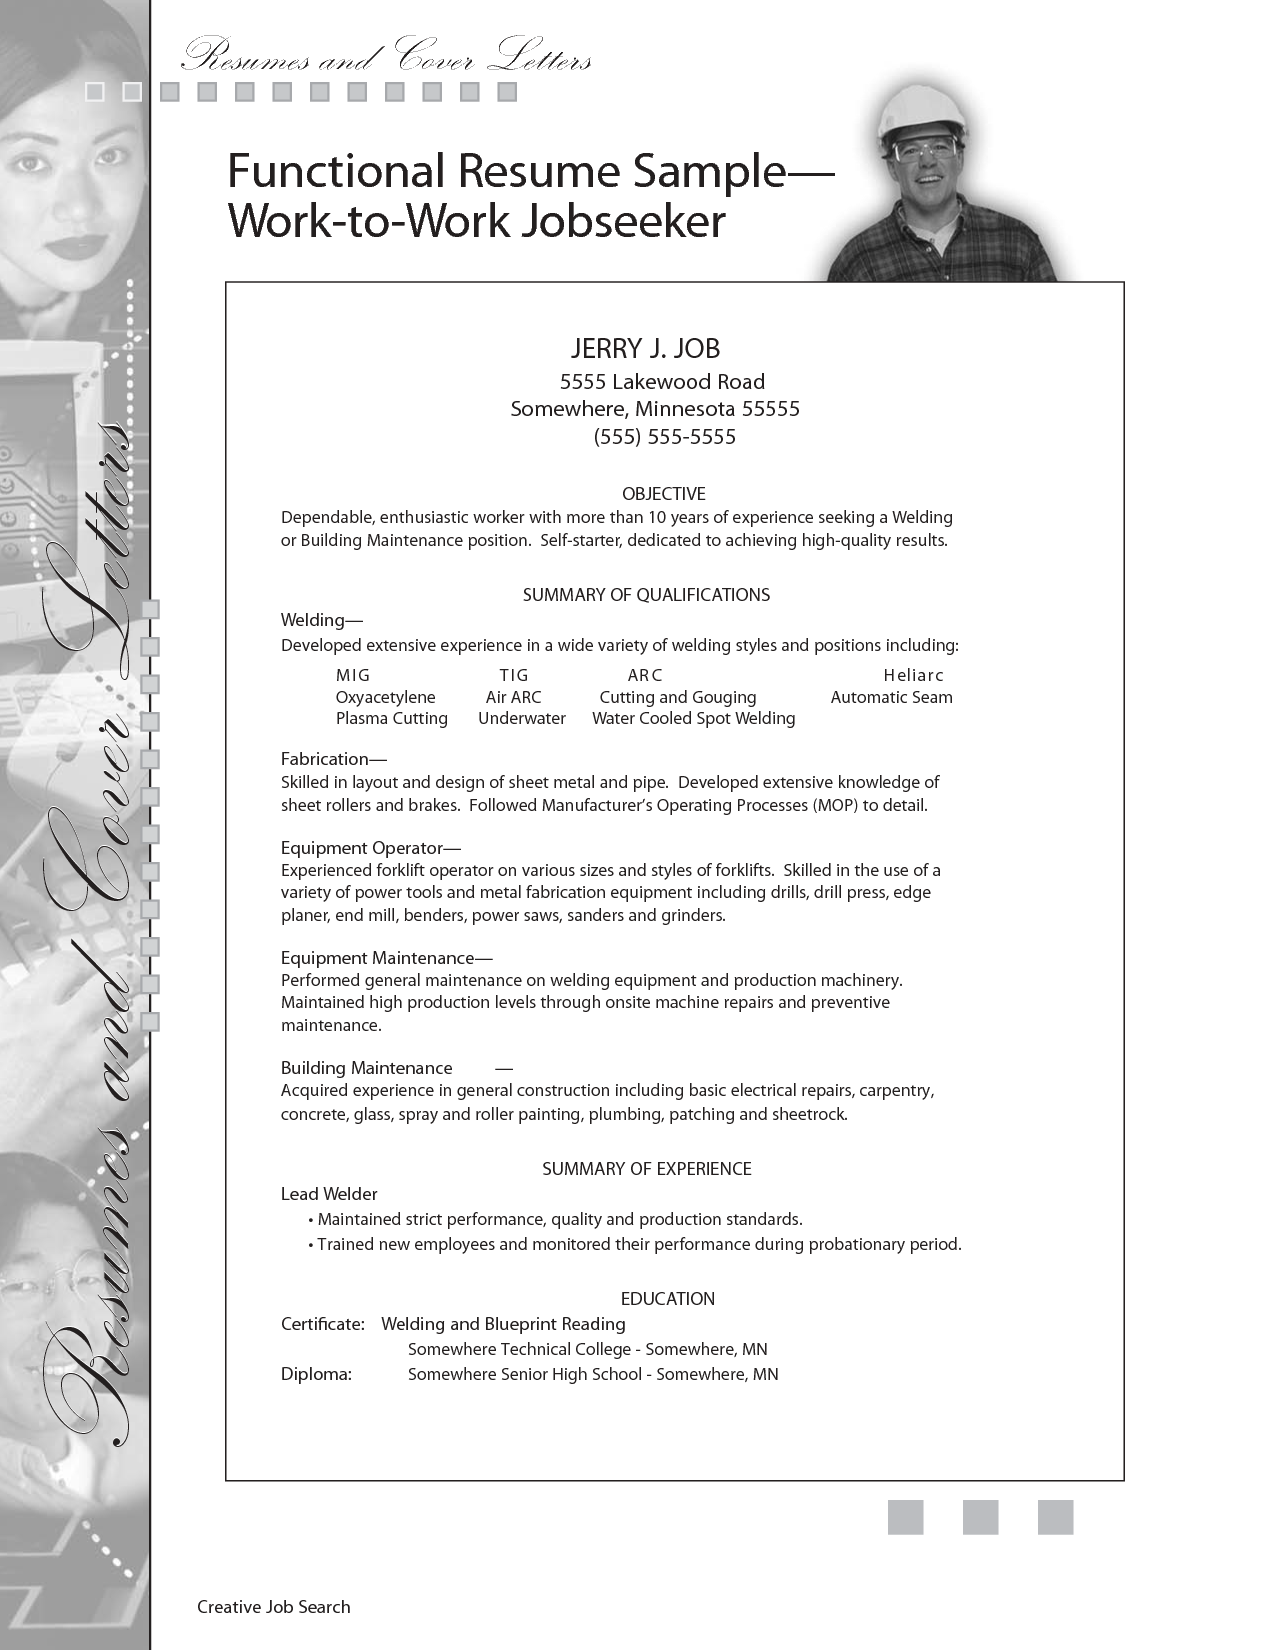 Sample Resume For Welding Position | Sample Building Maintenance Resume